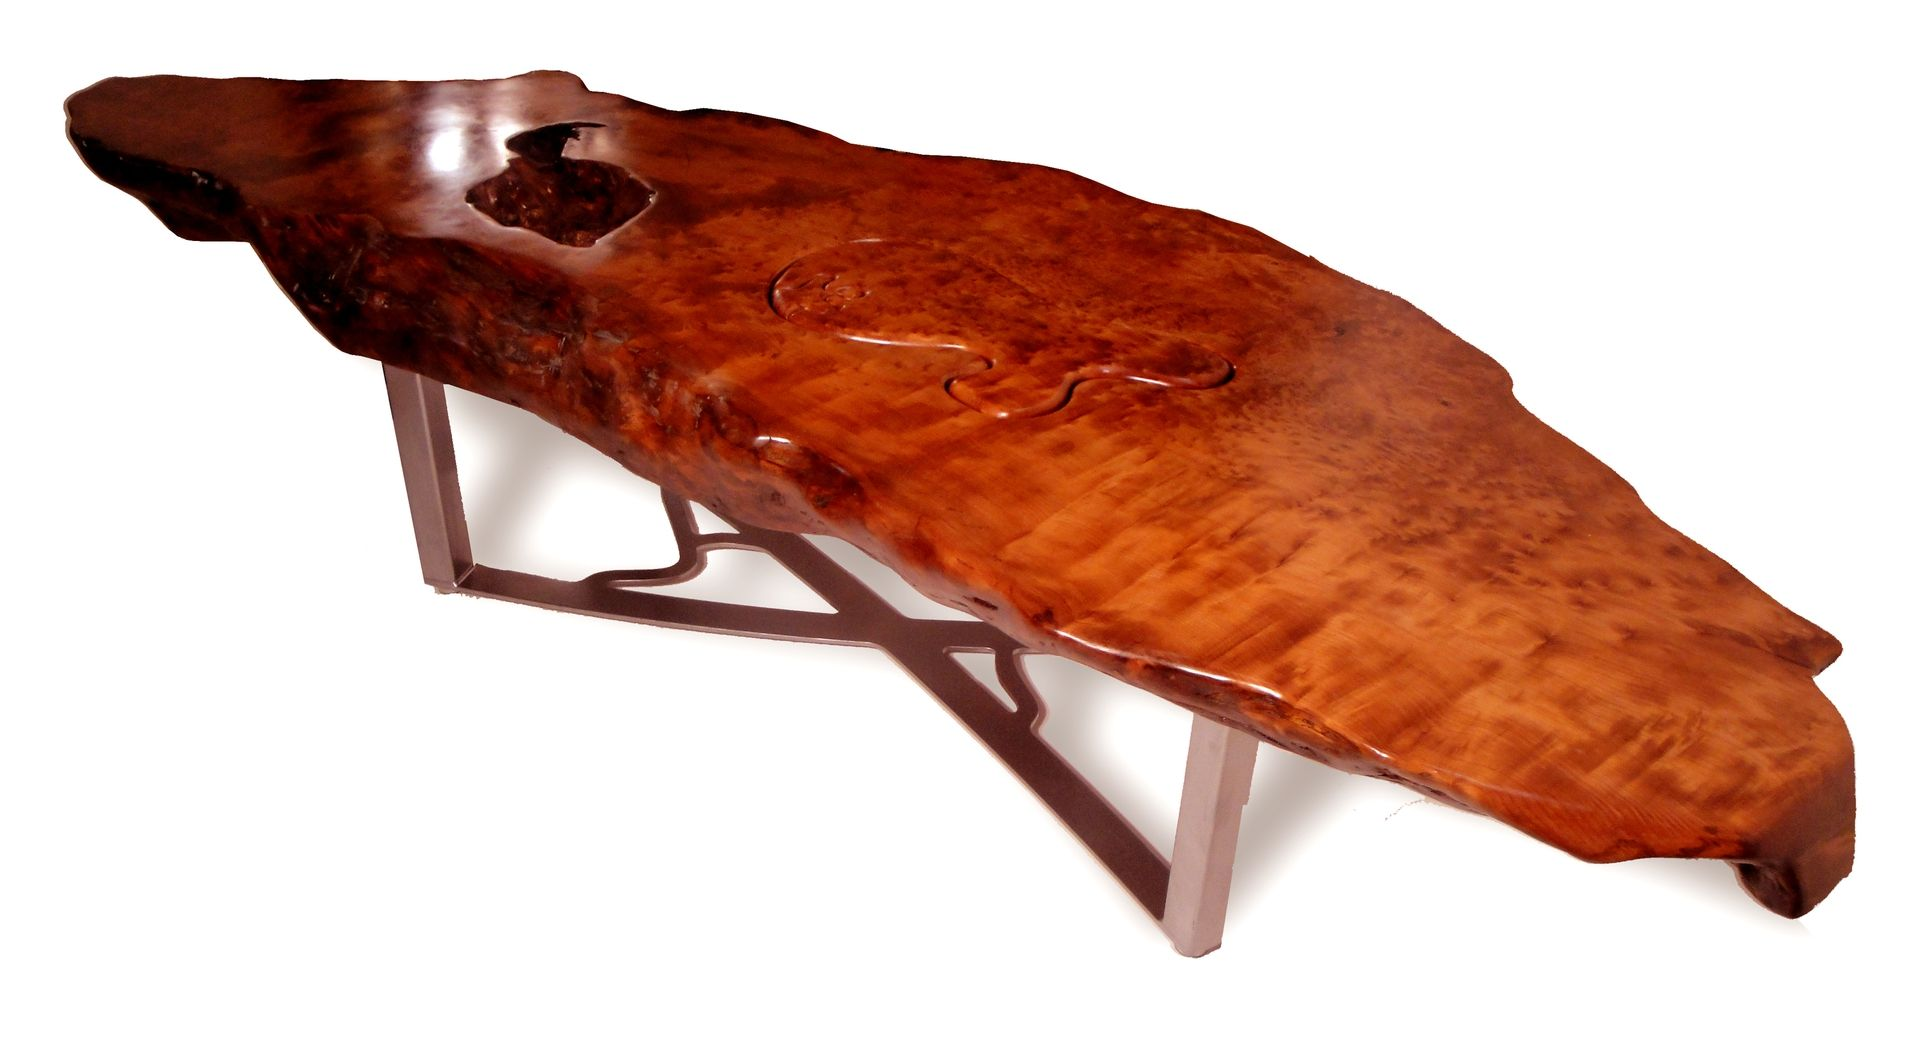 Custom Made Redwood Burl Coffee Table by Scott Dworkin Designs